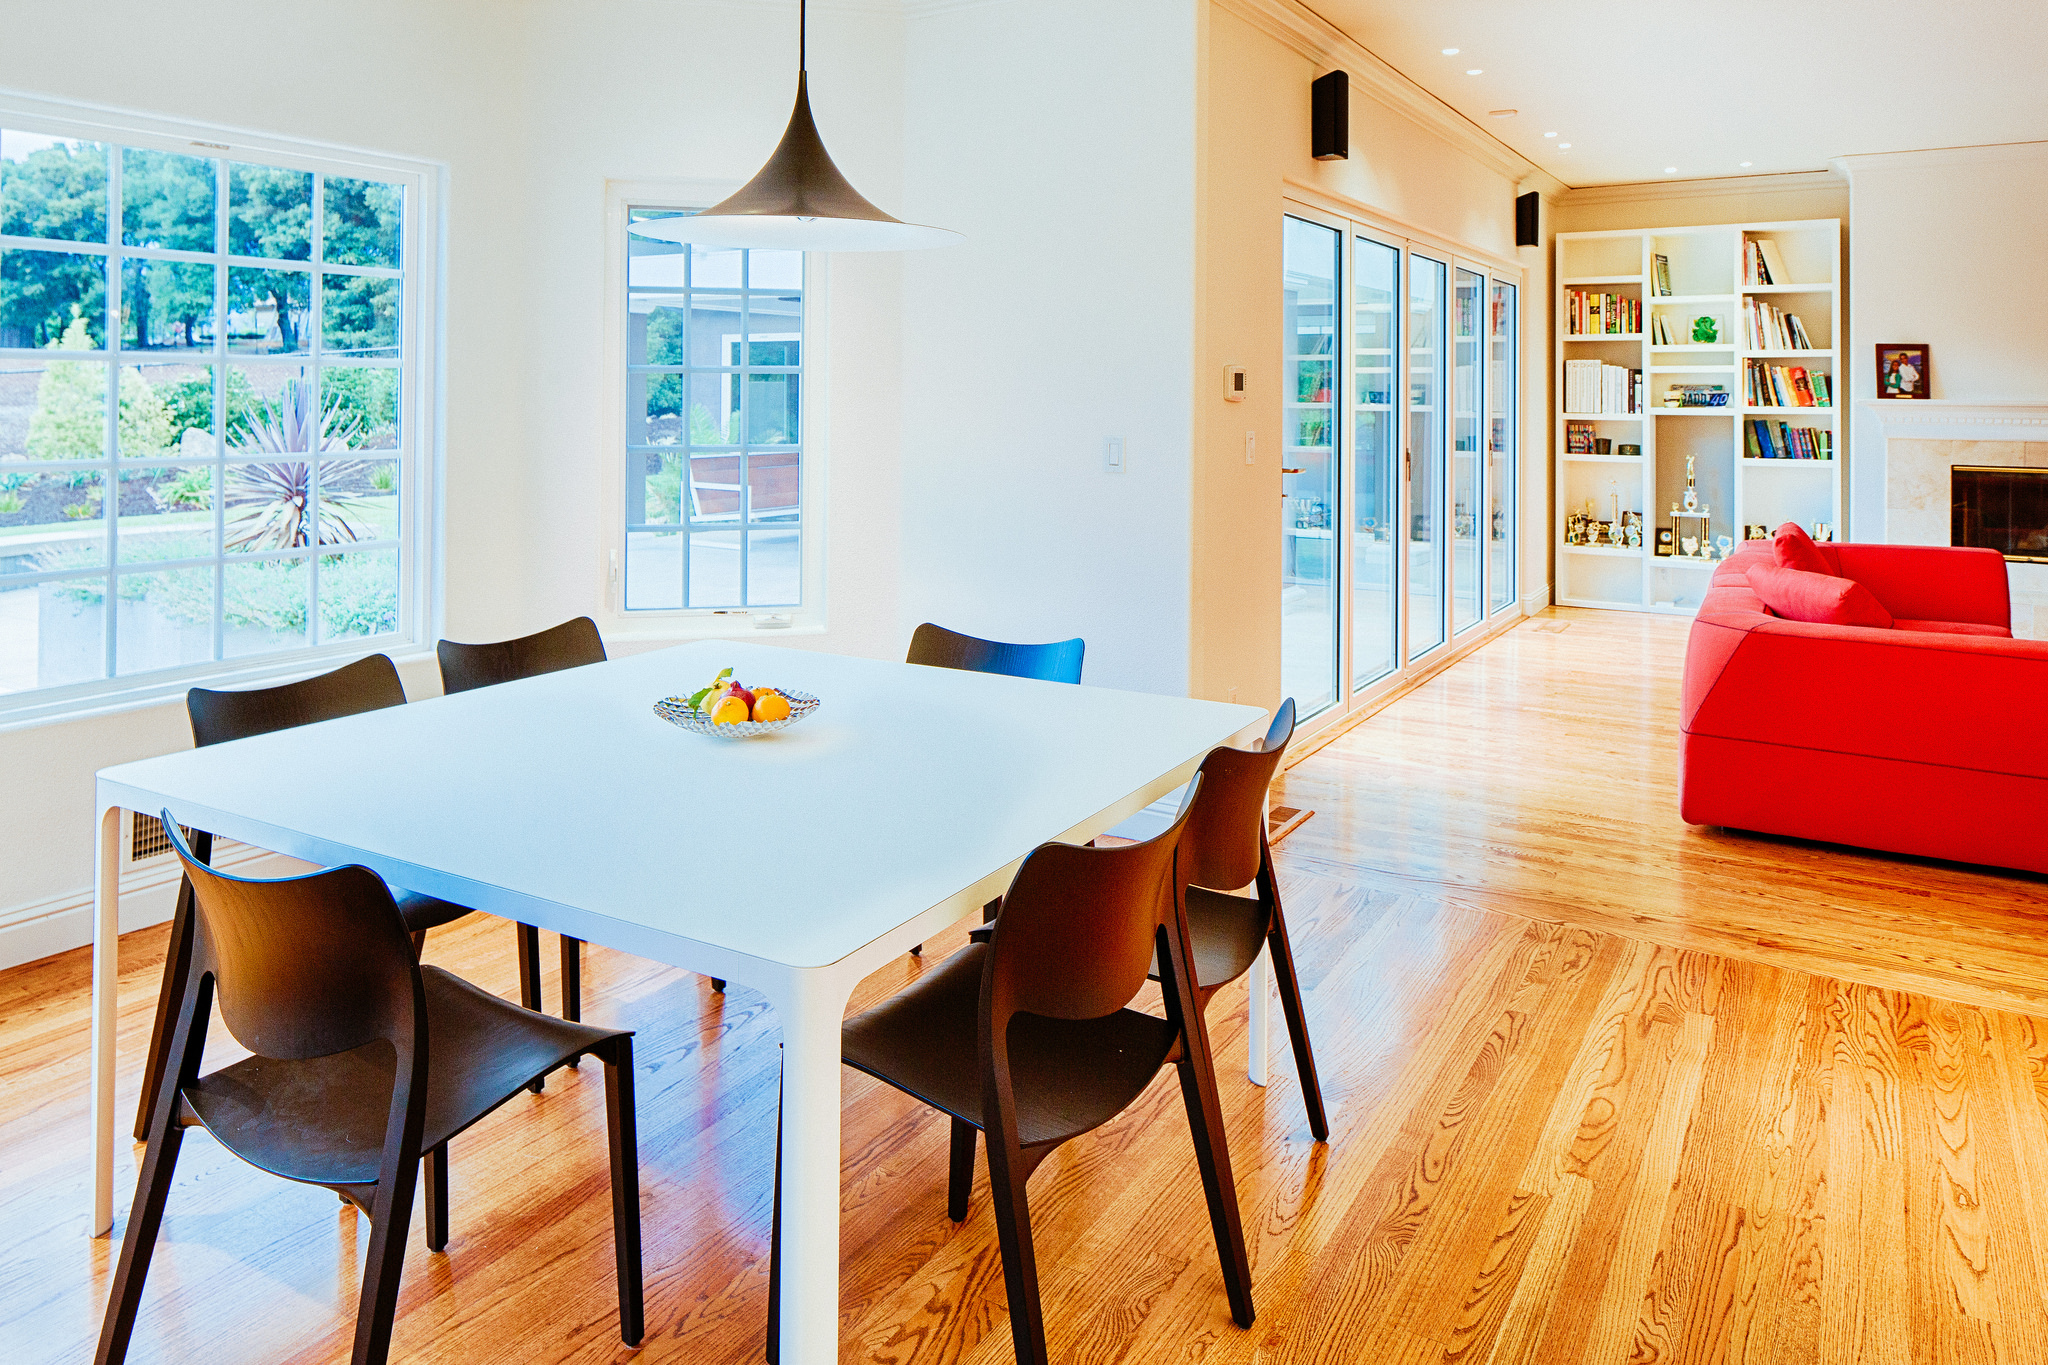 White dining table with dark chairs